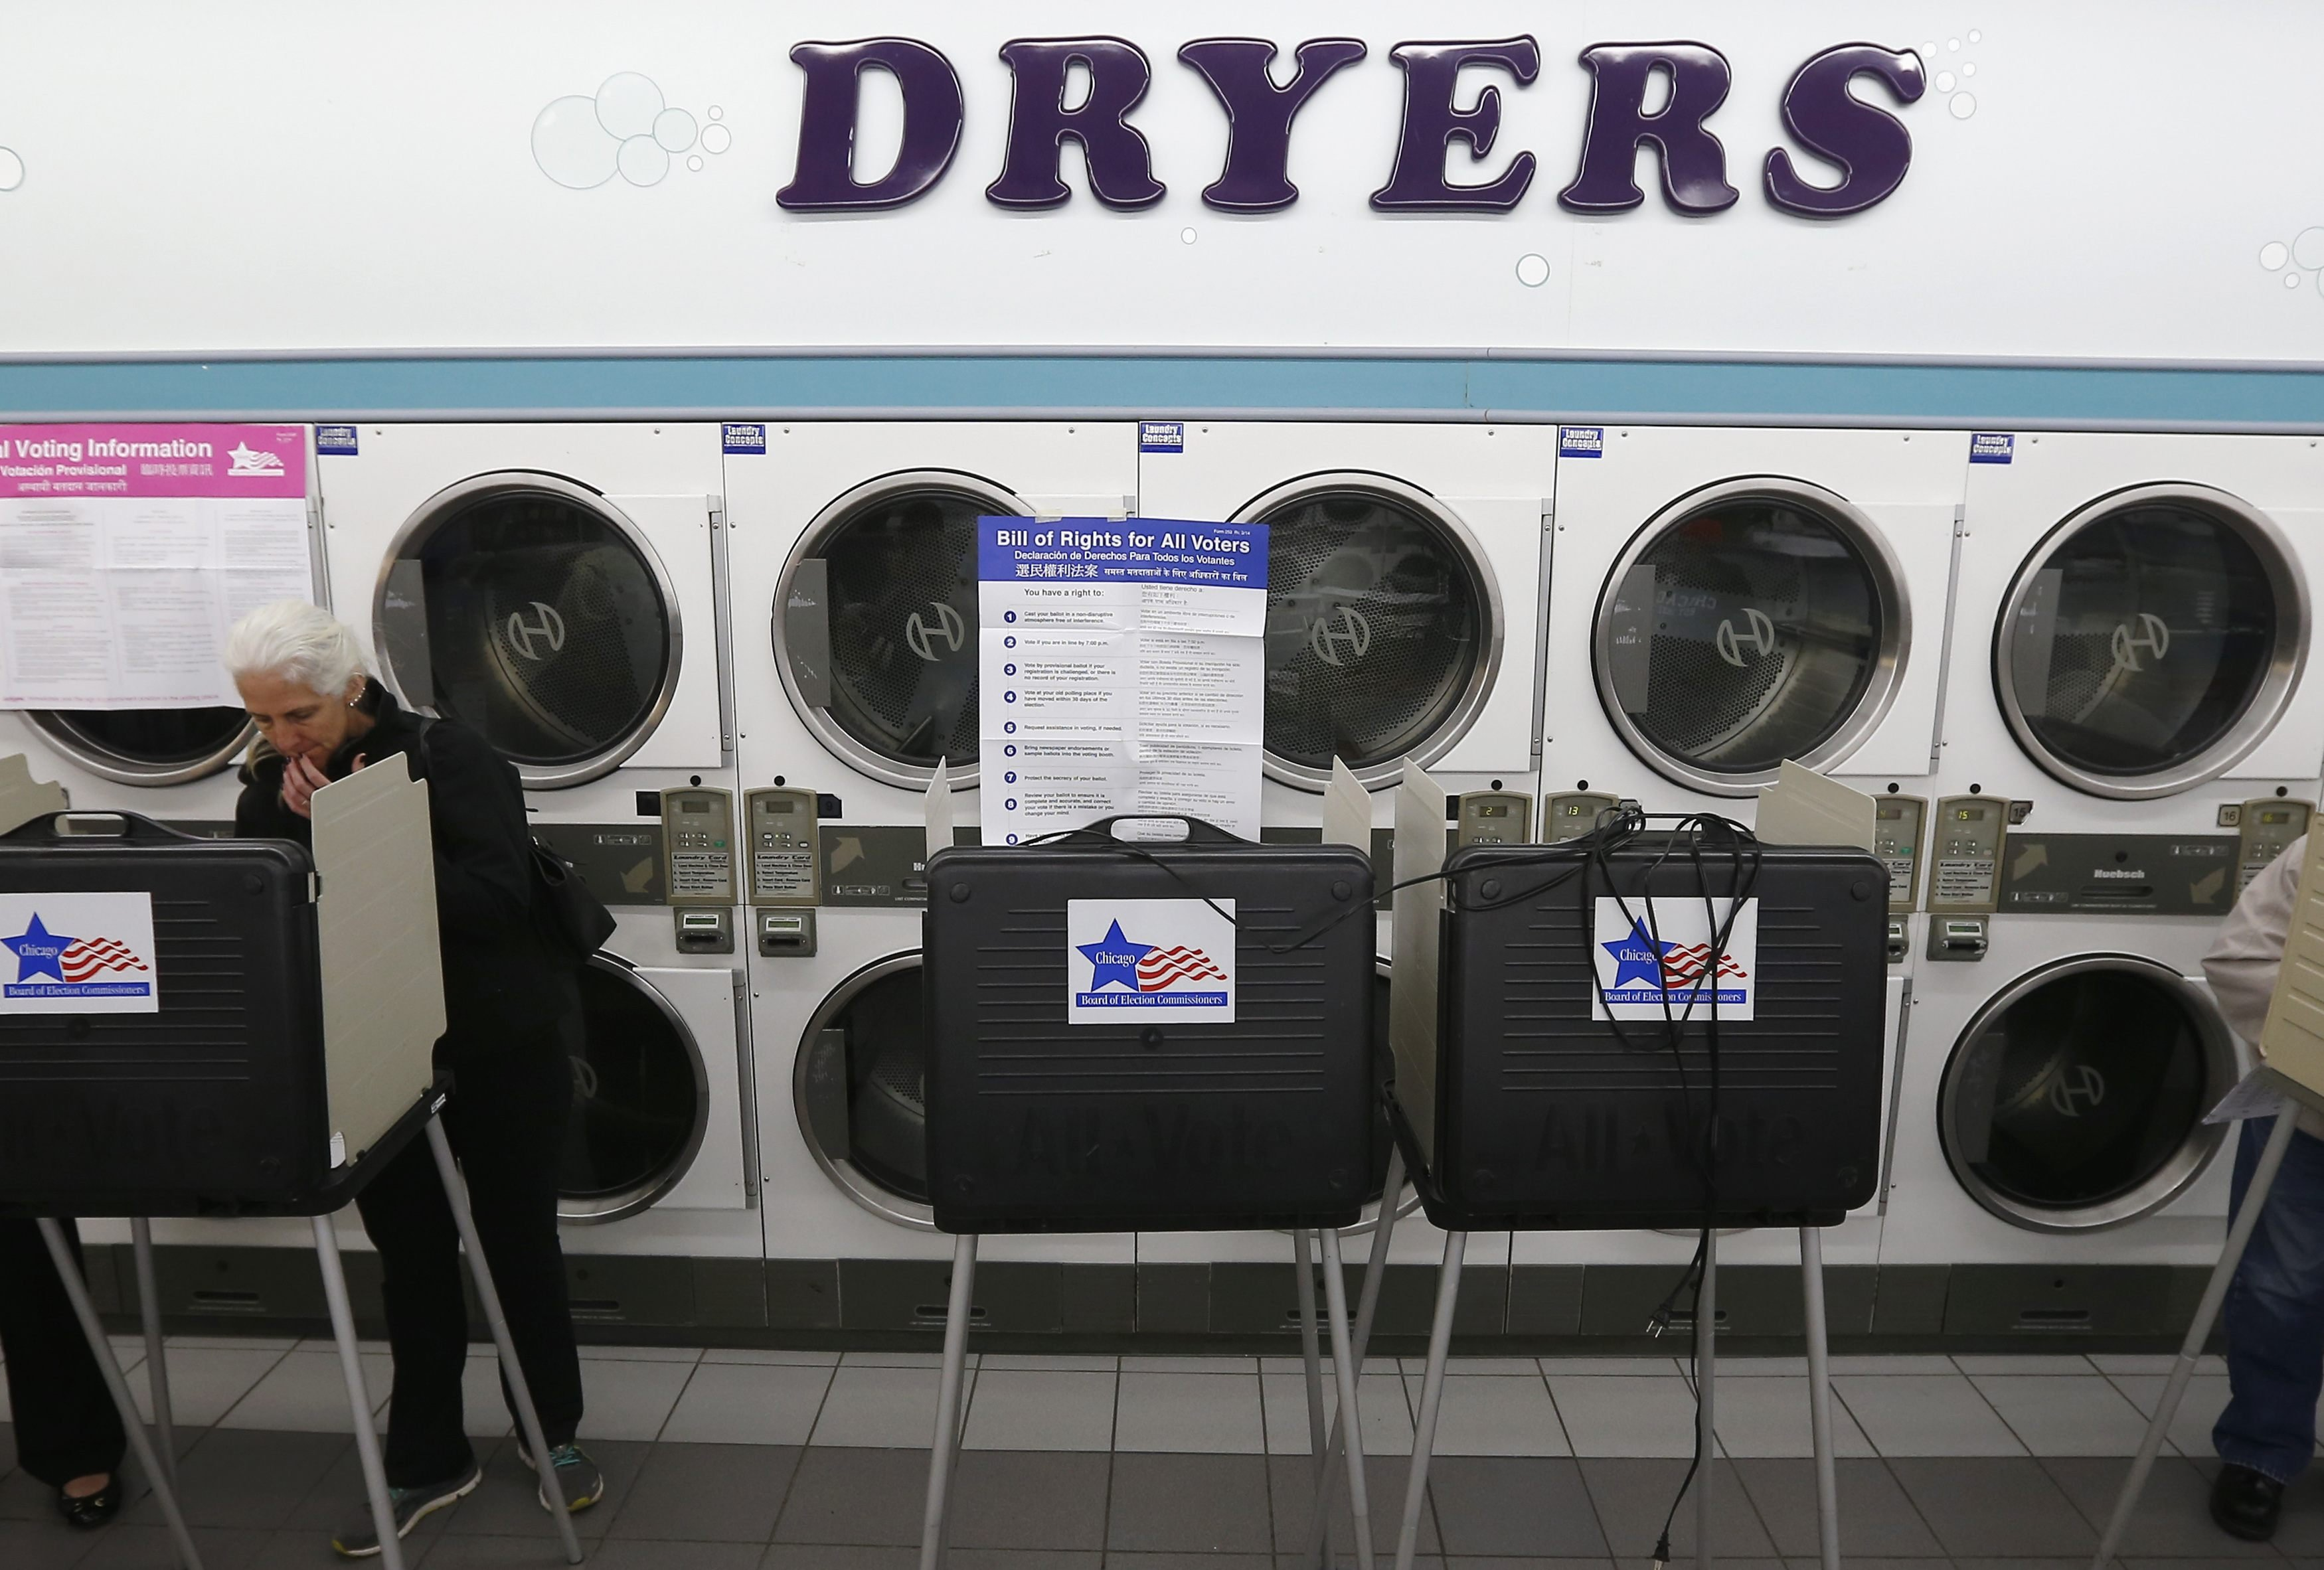 A voter looks over her ballot for the U.S. midterm elections at a laundromat used as a polling station in Chicago on Nov. 4, 2014.